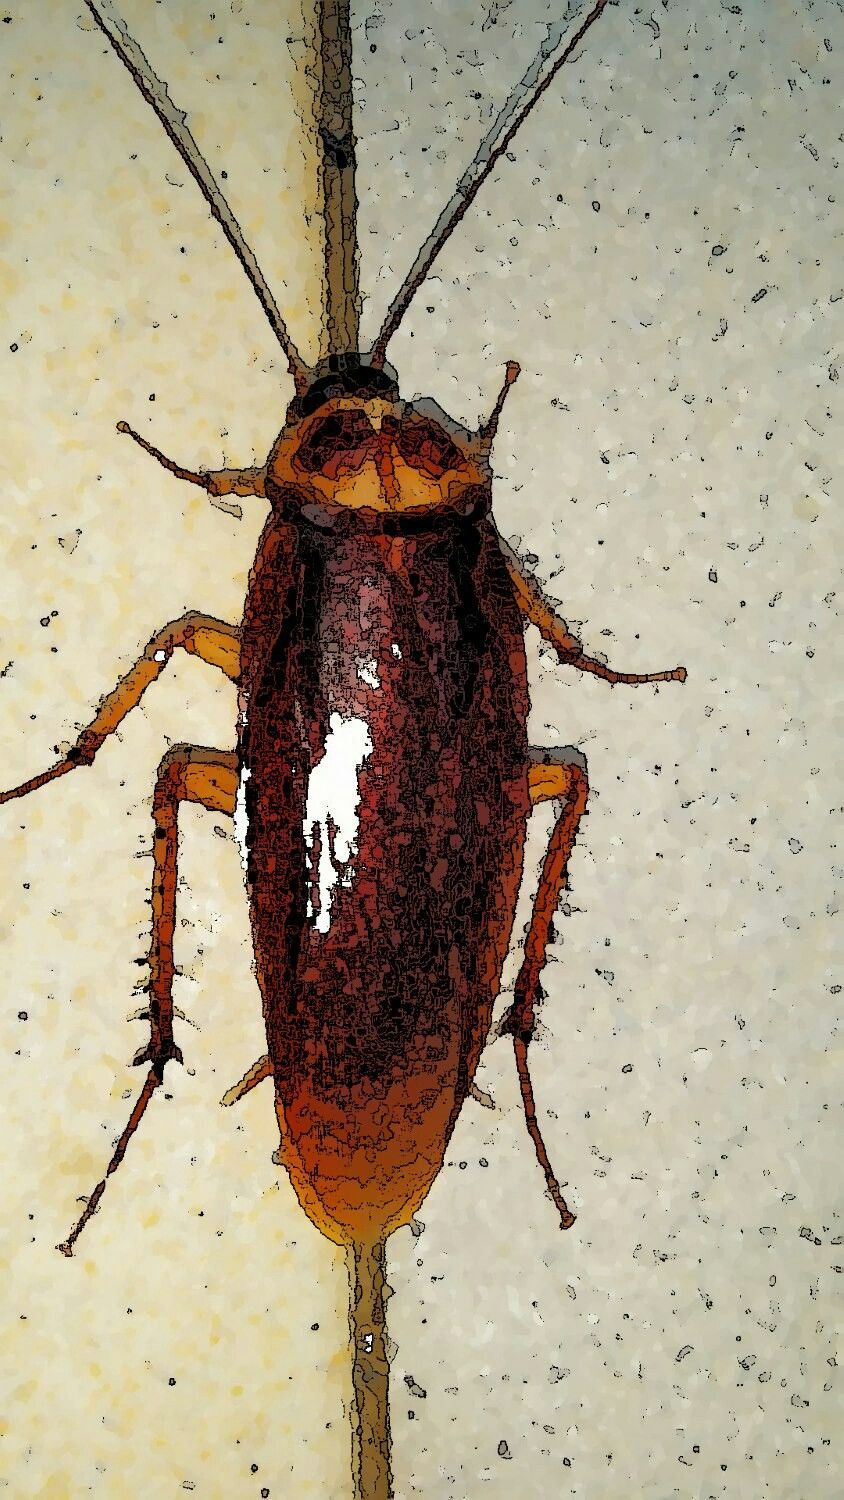 Taking The Hastle Out Of The Bug Problem In Your Attic With A Pestcontrol Service That Offers A Complete Cleaning Diy Pest Control Pest Control Bug Problem